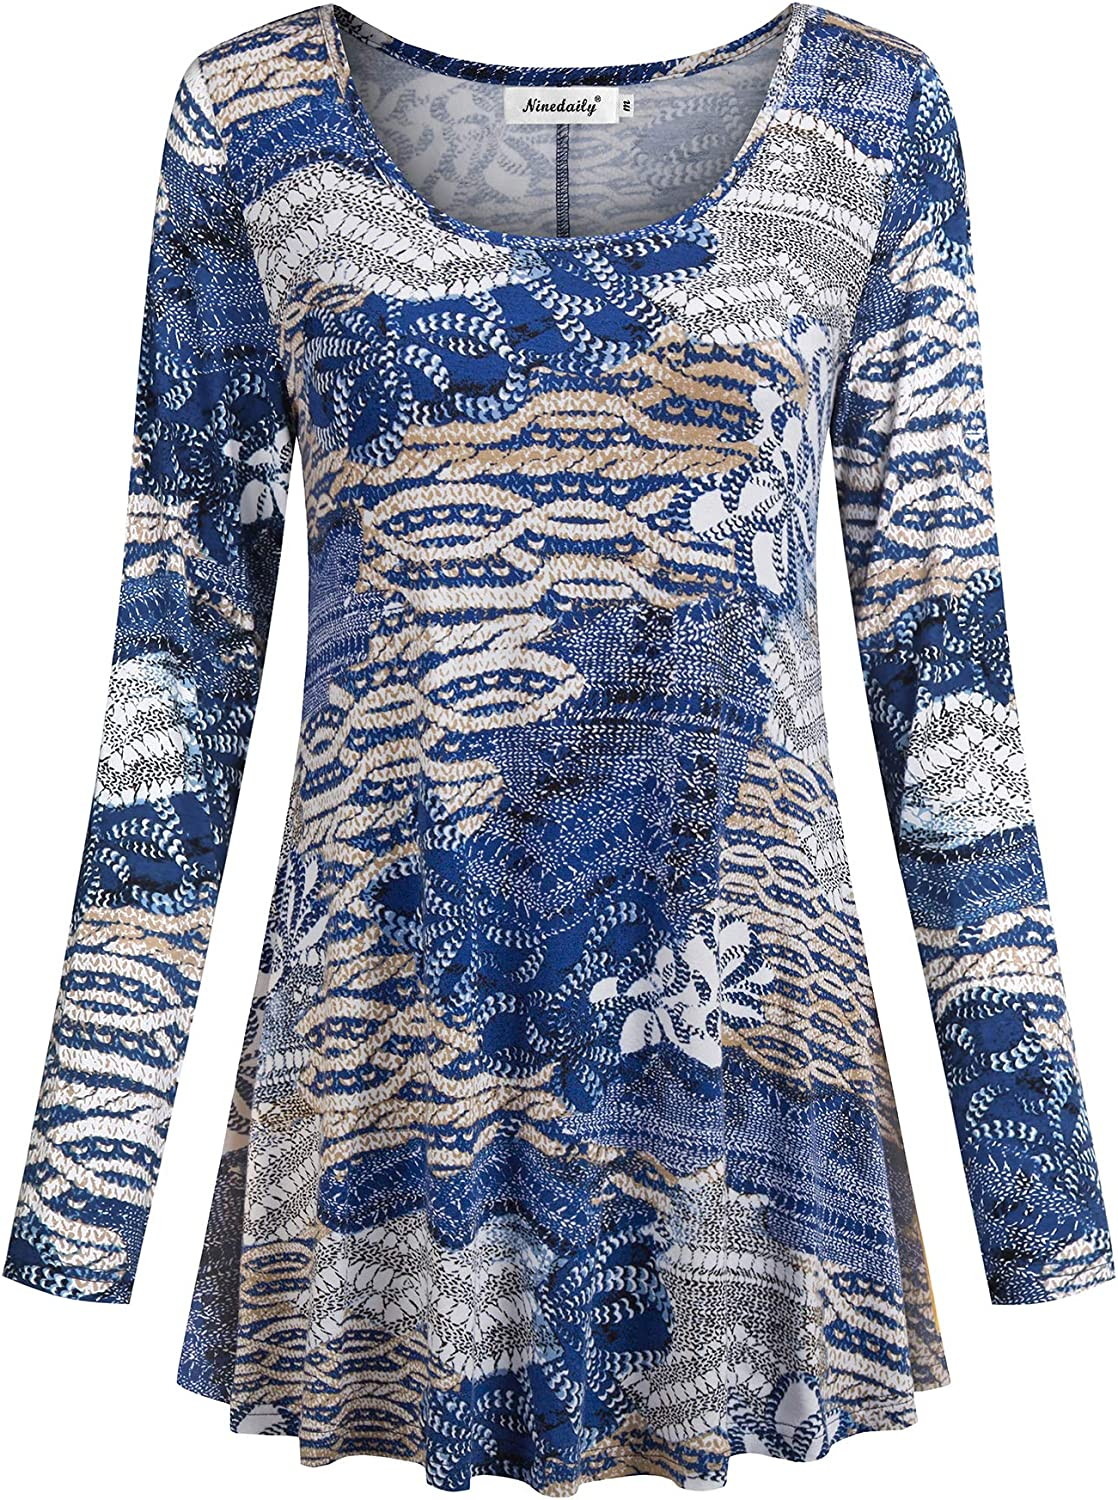 Ninedaily Women's Tops Fall Long Sleeve Floral Loose Dressy Tunic Blouse